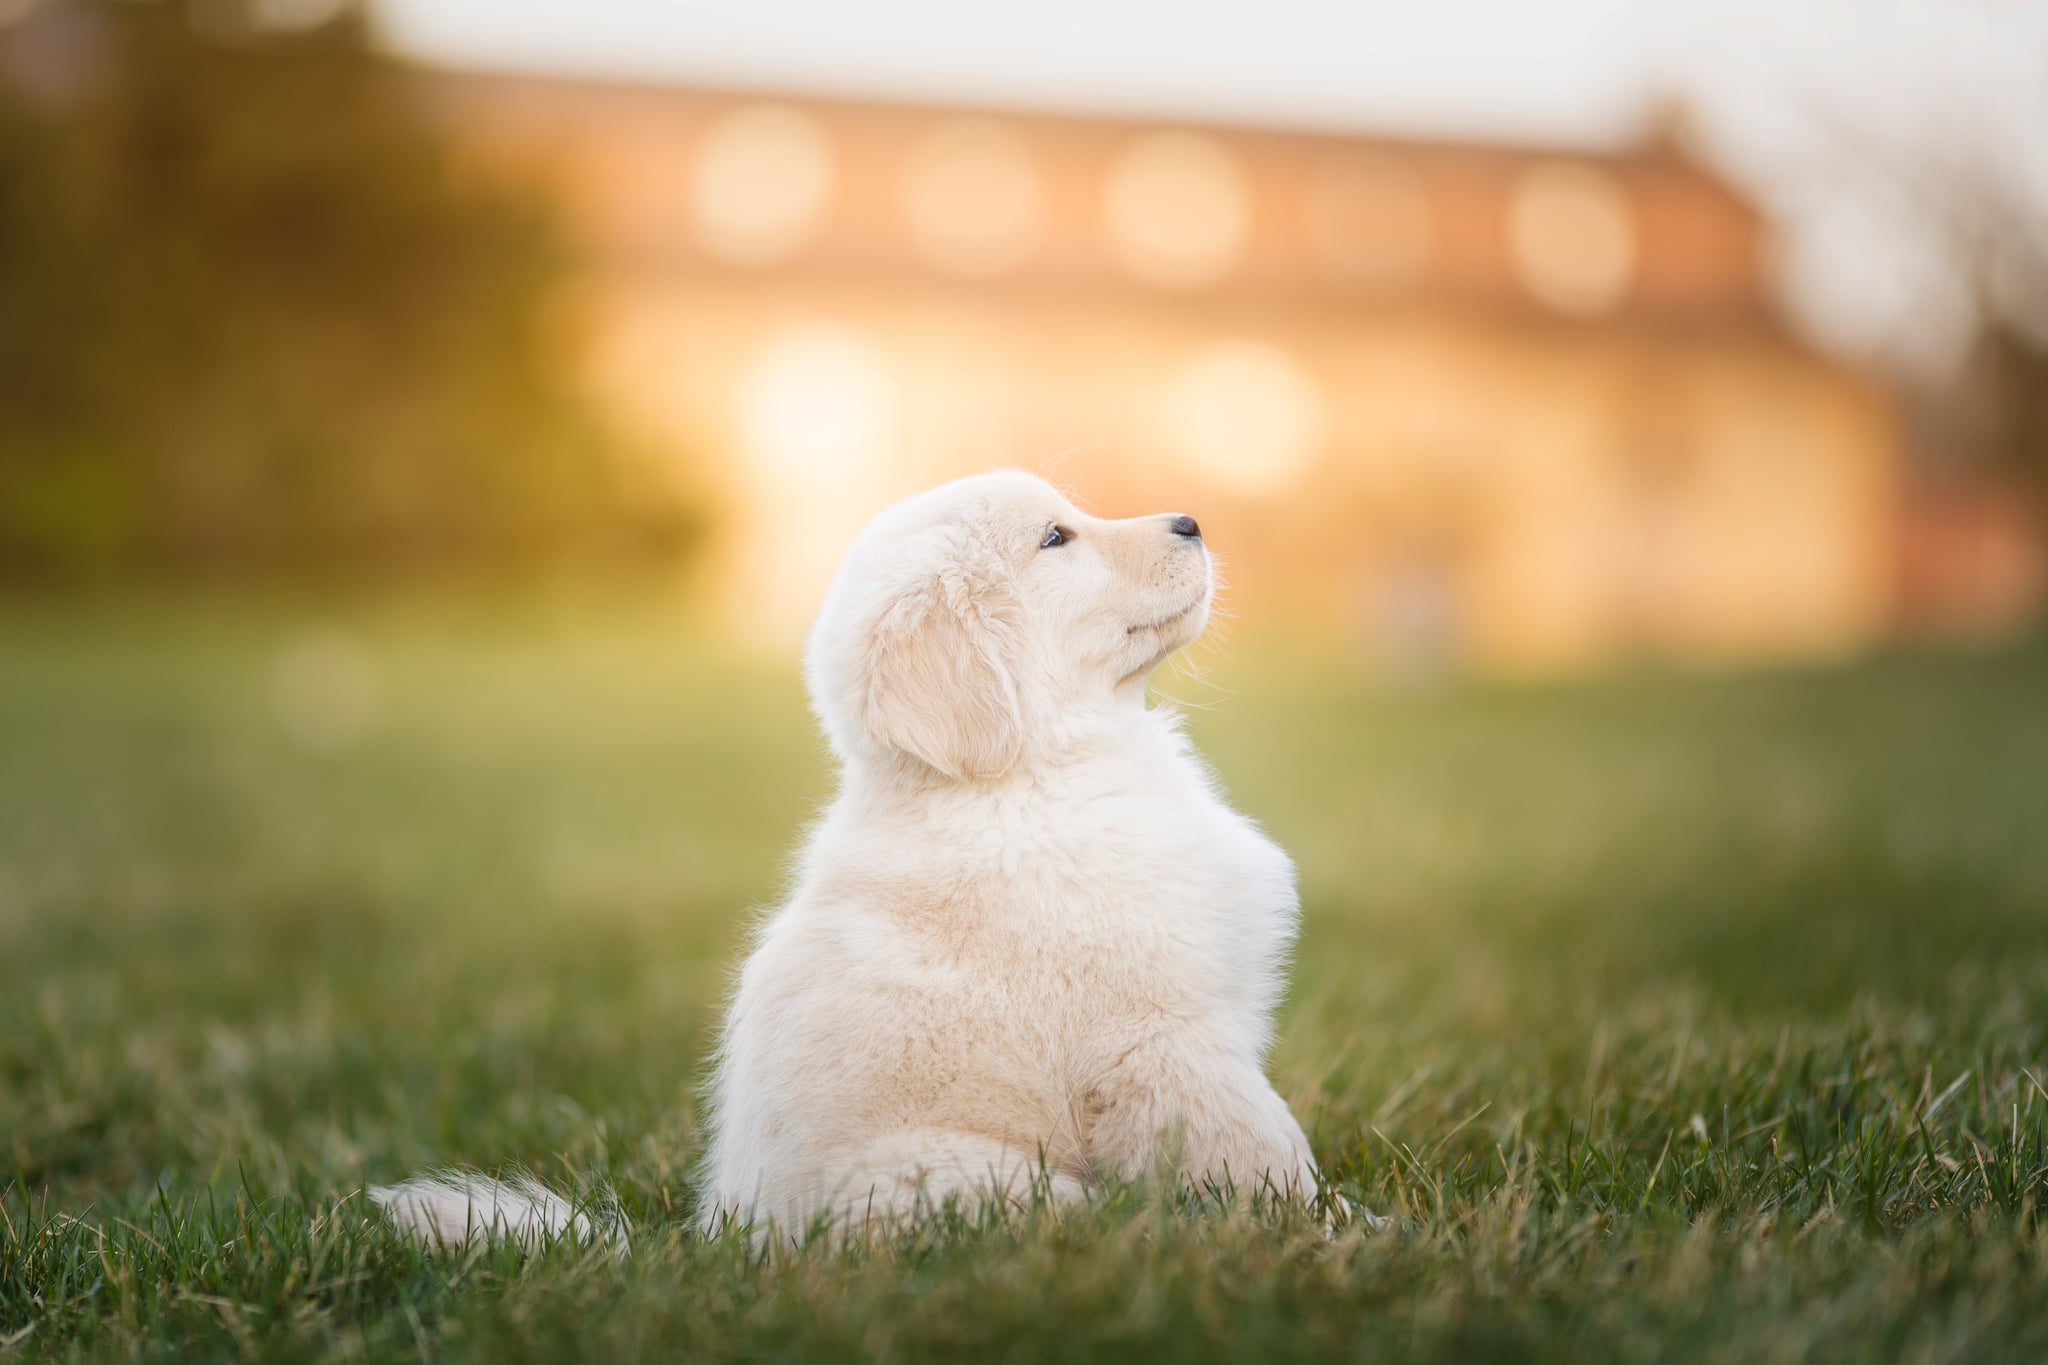 A Golden Retriever puppy looking up in a suburban field.